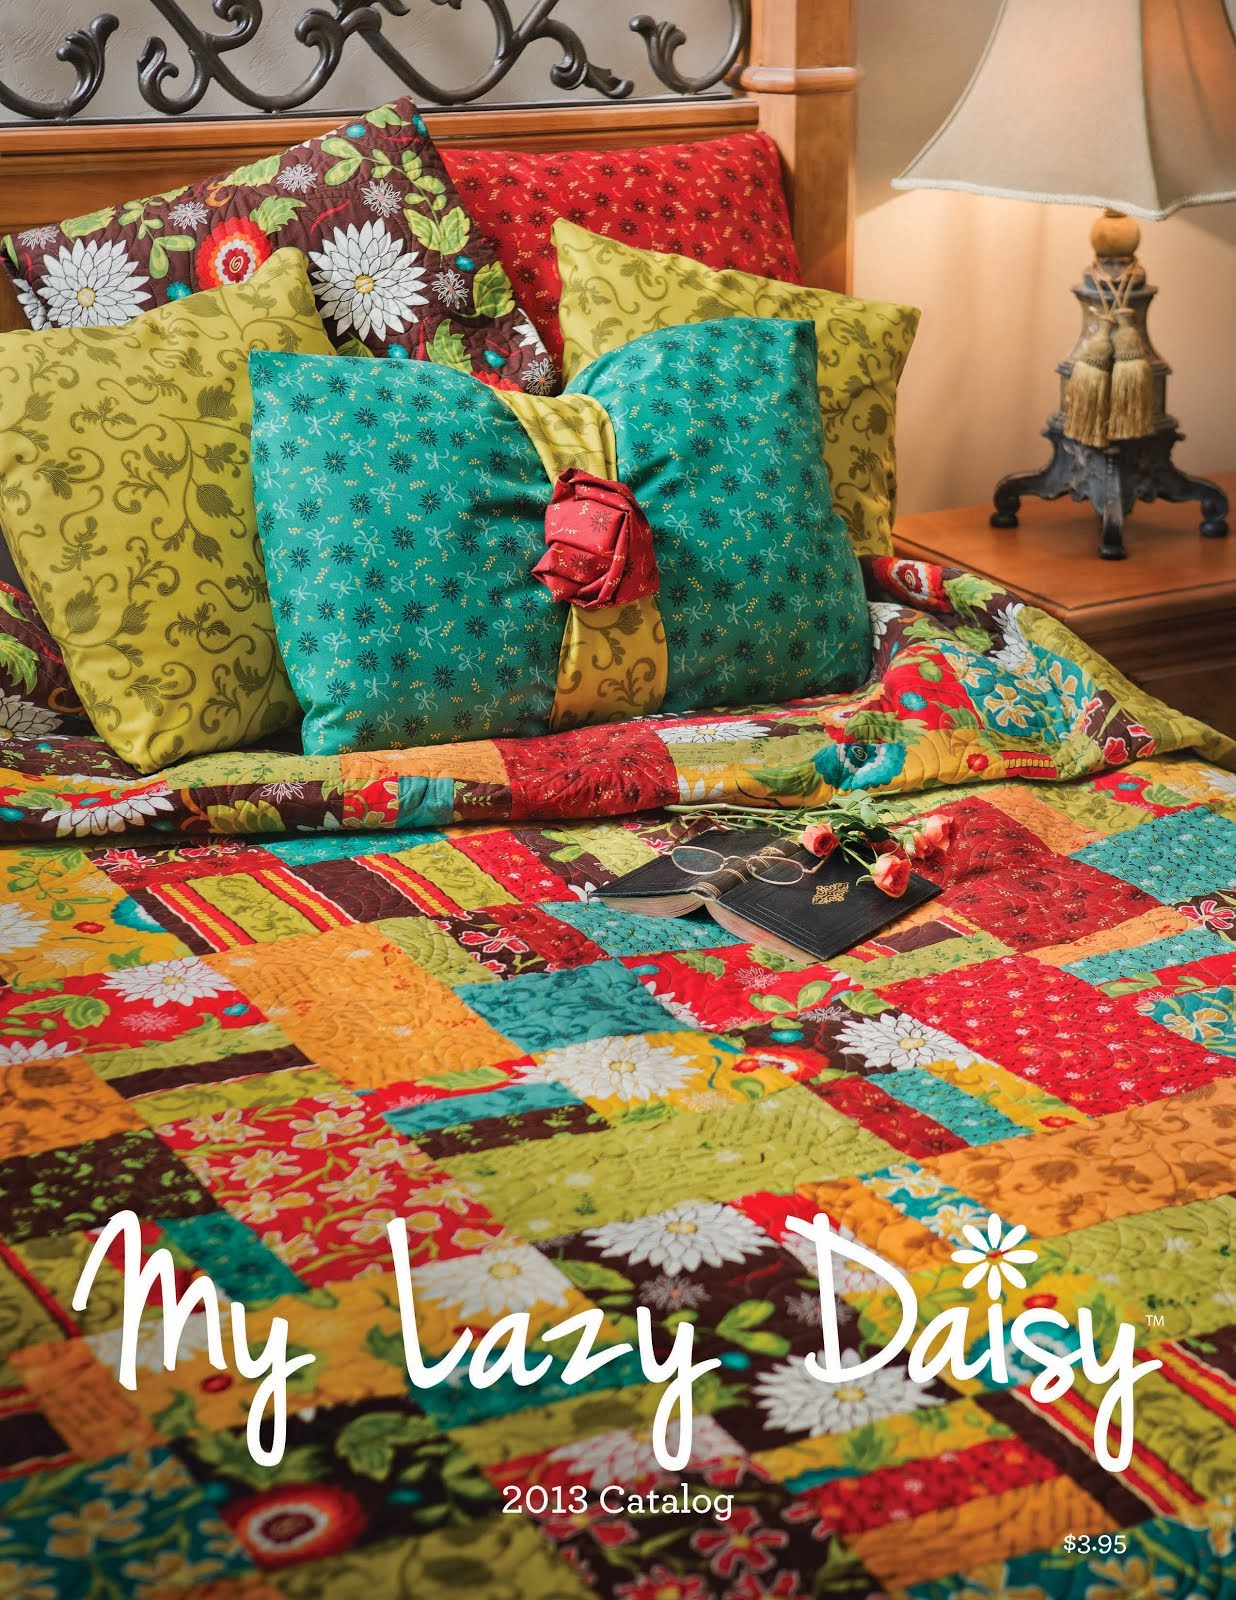 The My Lazy Daisy Catalog